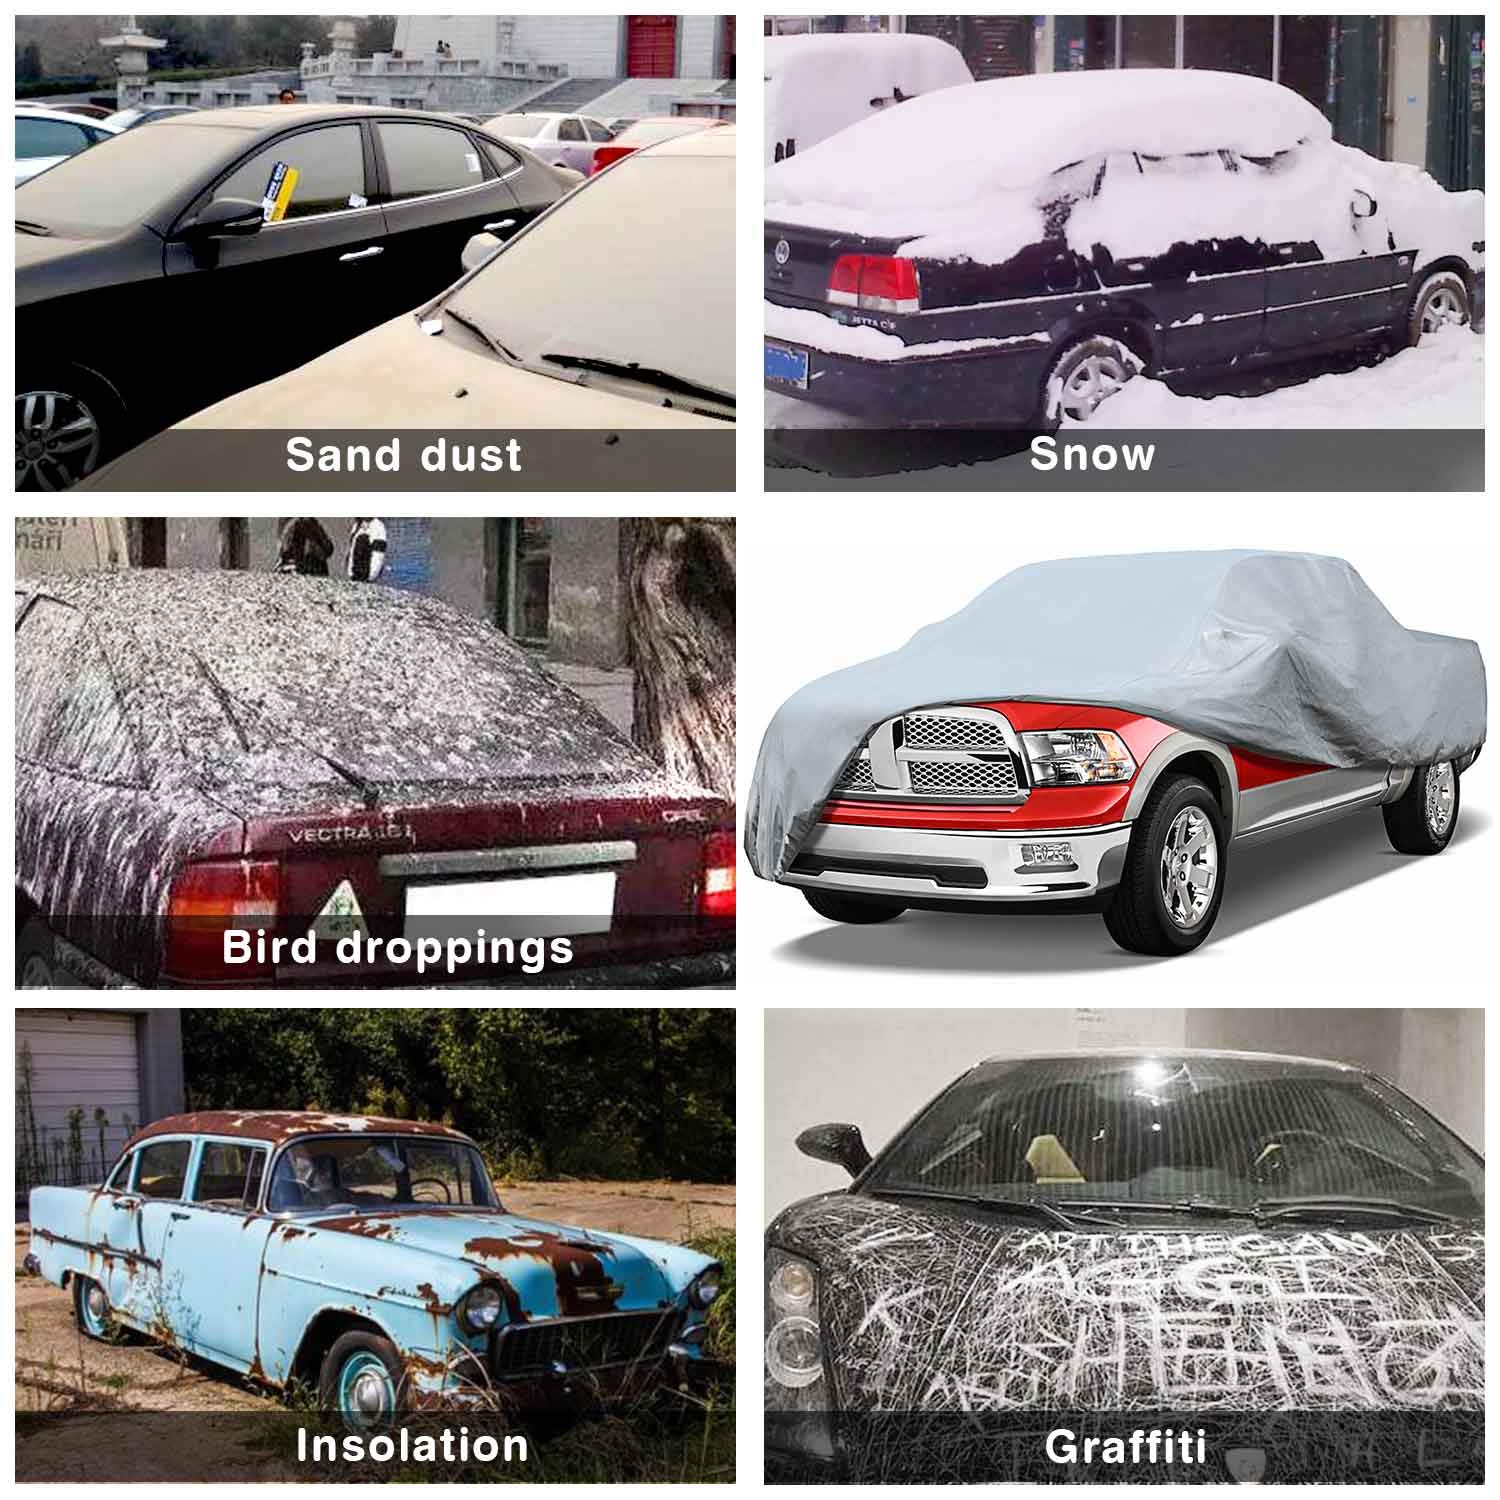 Leader Accessories Premium Car Cover 100/% Waterproof Cars Length up to 228 Breathable Outdoor Indoor Car Cover All Weather Protection